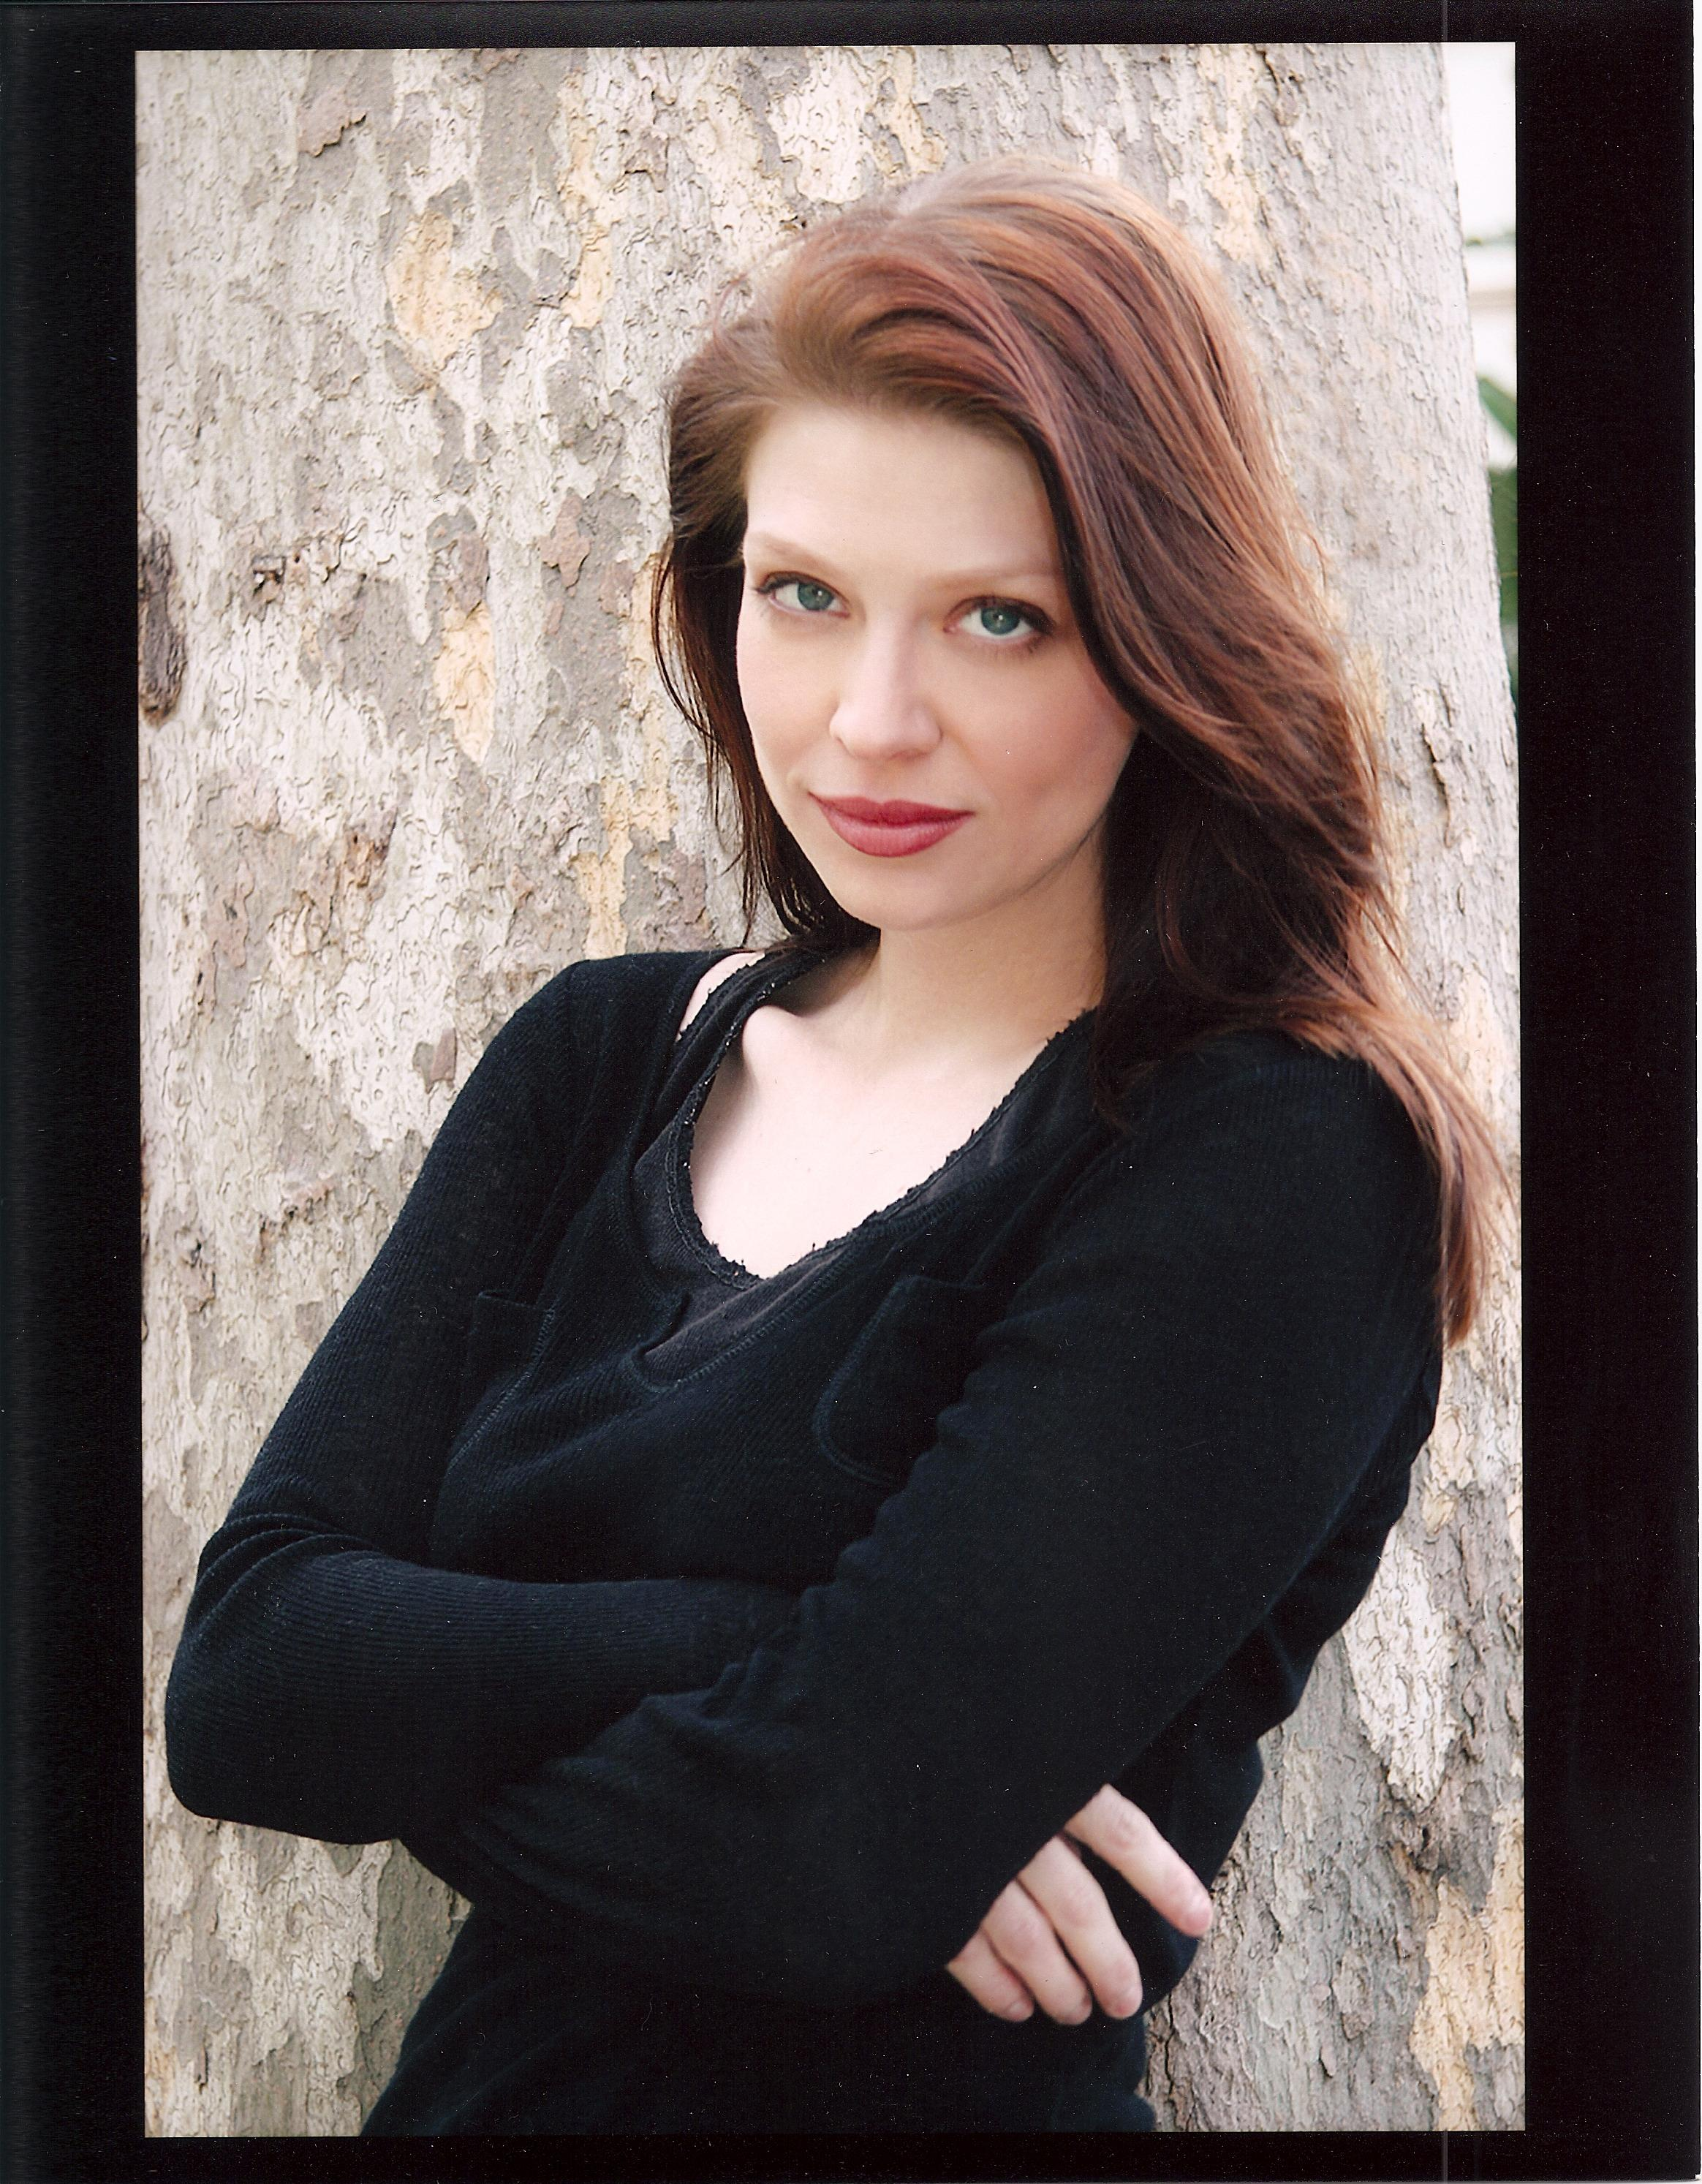 Amber Benson - Amber Benson Photo (34310252) - Fanpop